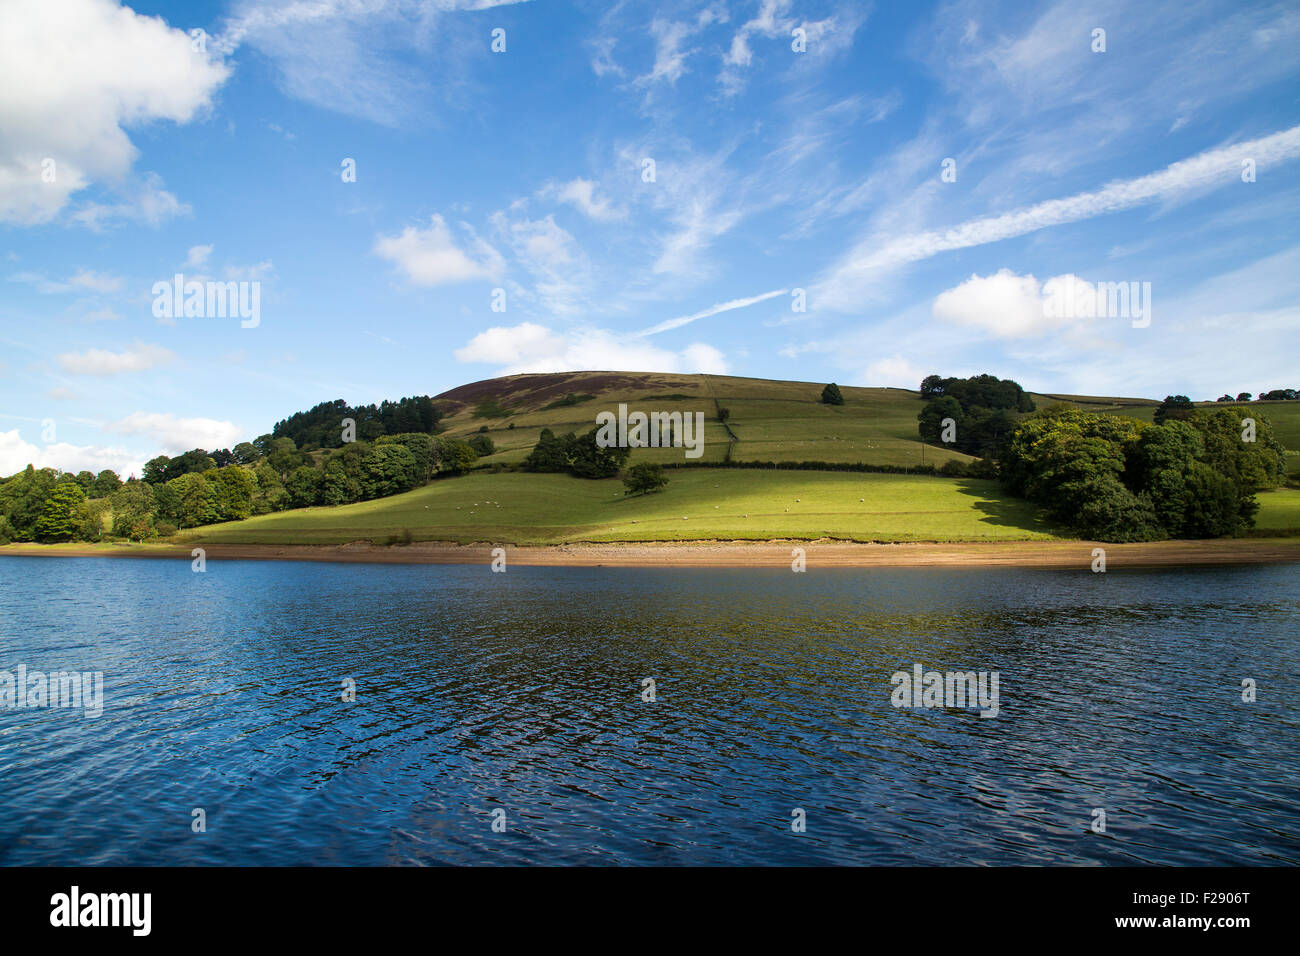 A view across a Ladybower Reservoir on a sunny summer's day. - Stock Image